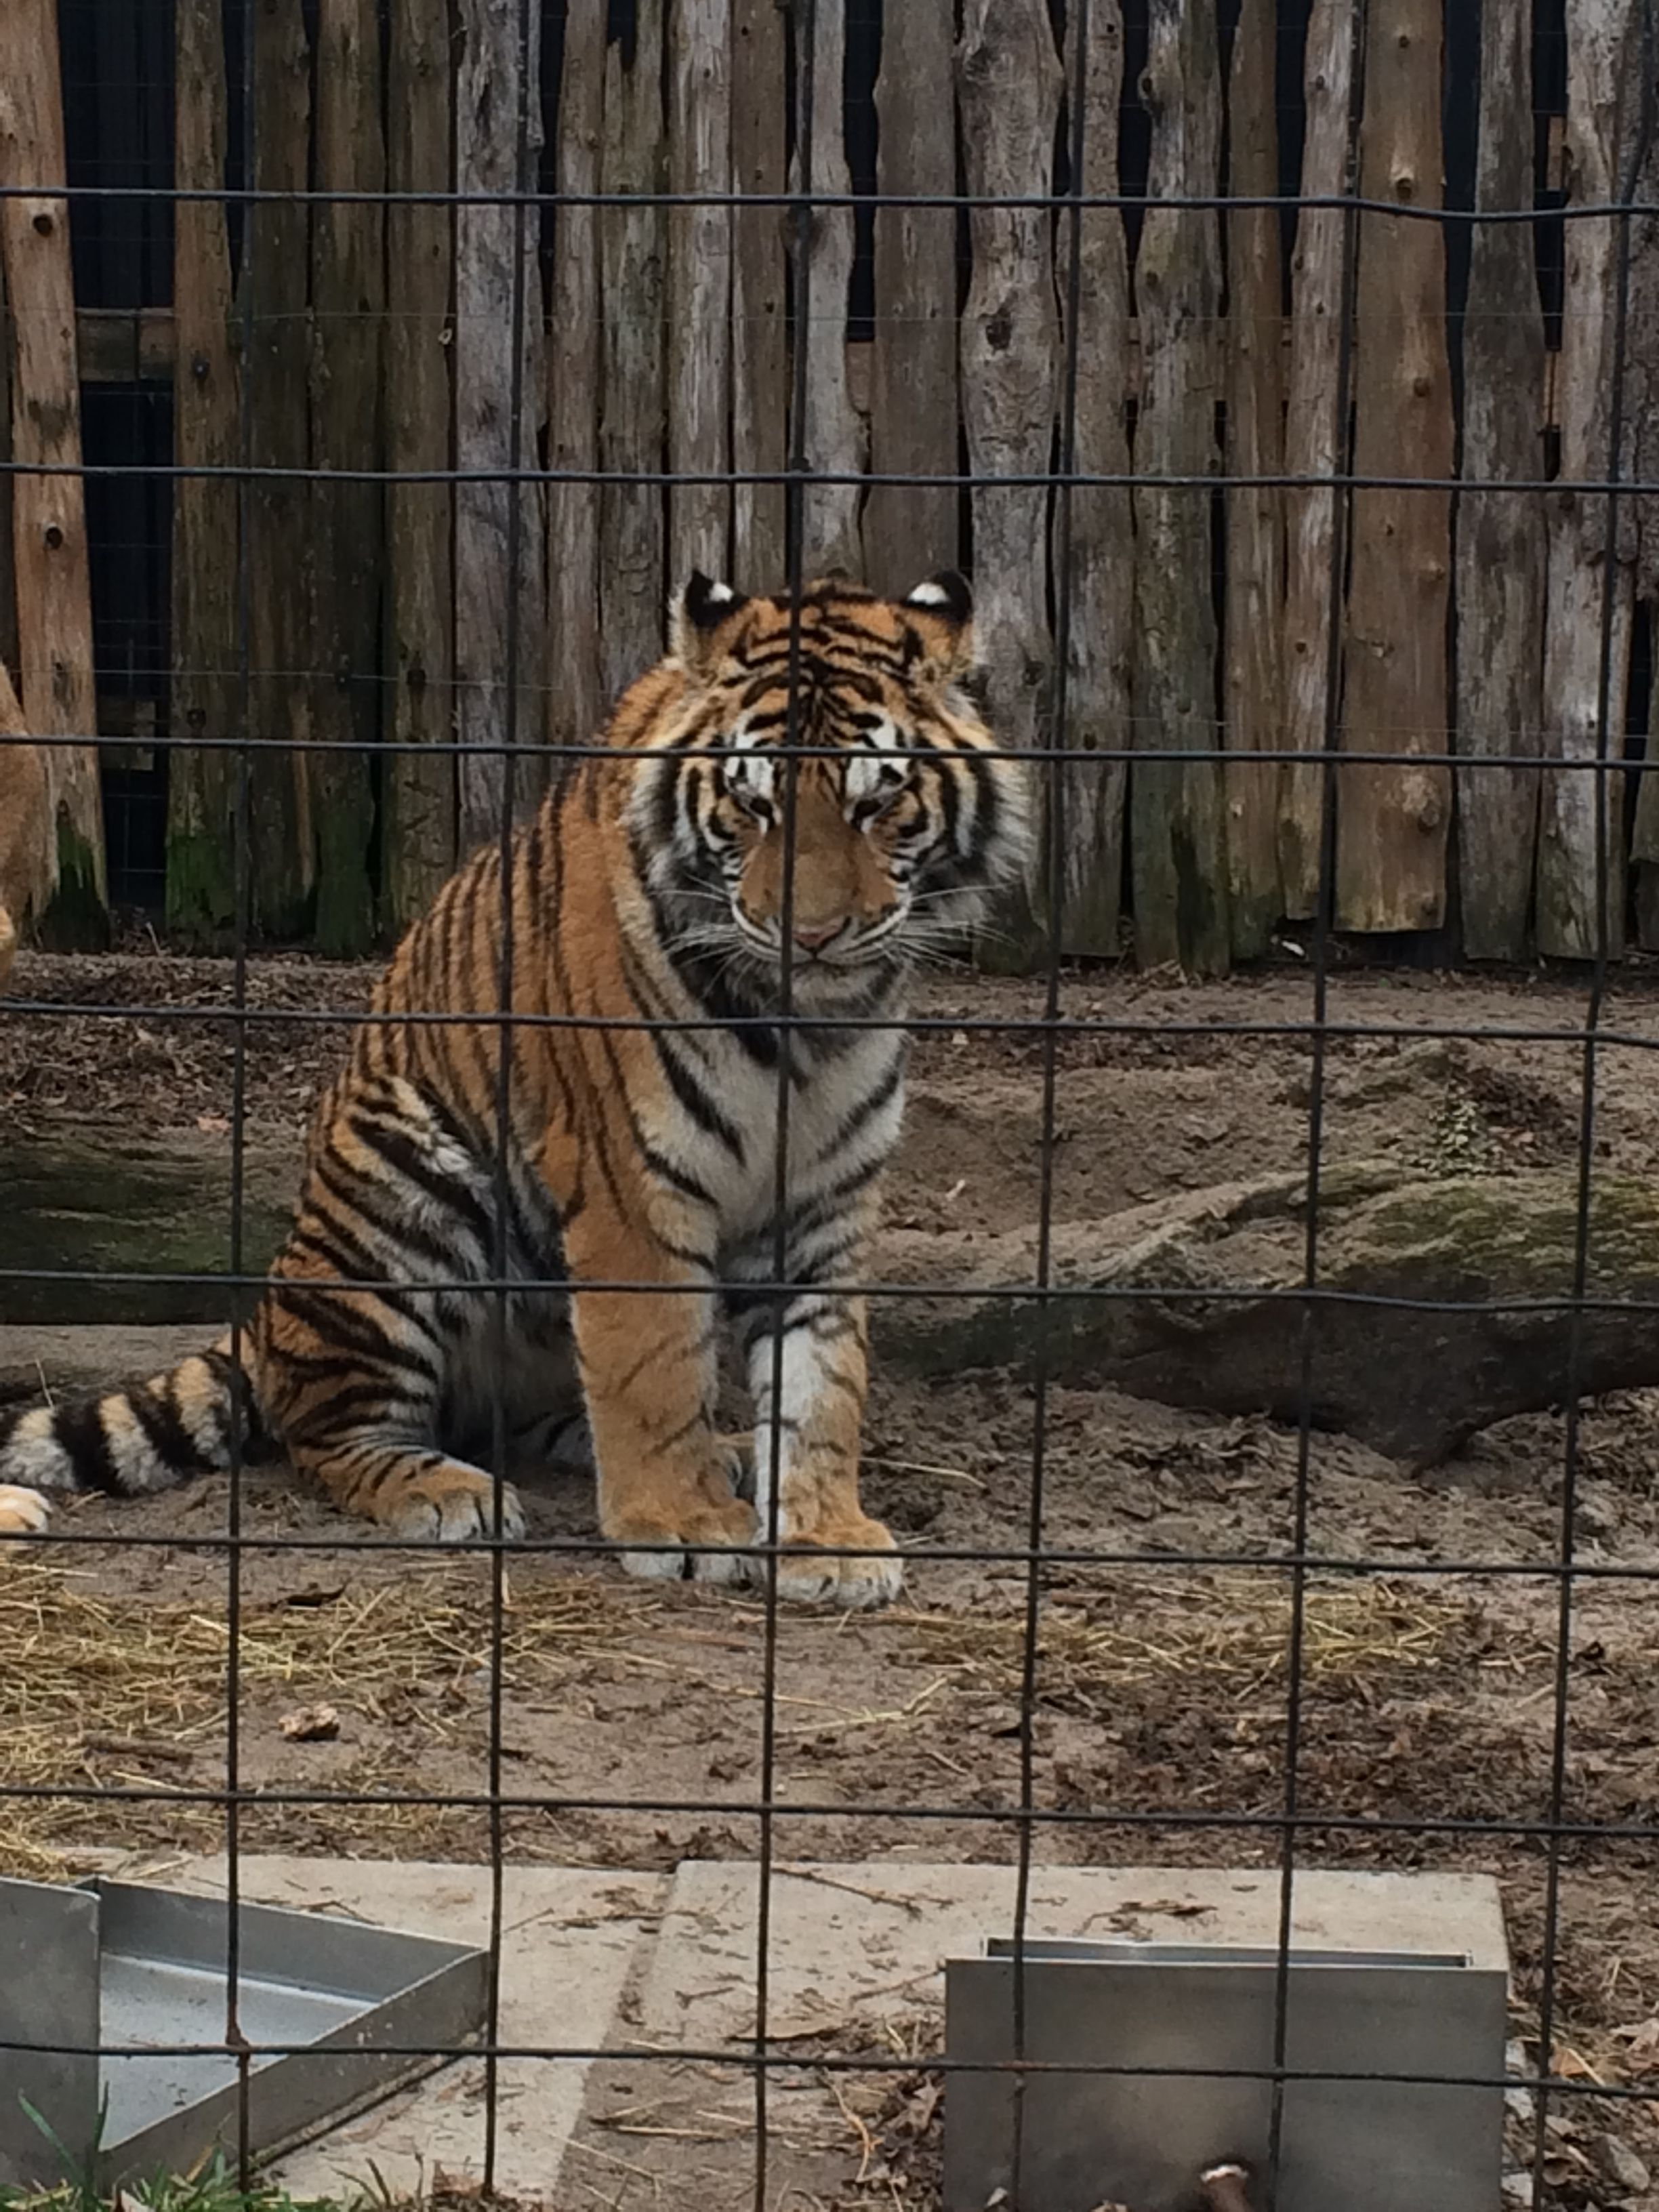 Please read this article! Hollywood Animal Trainer Caught